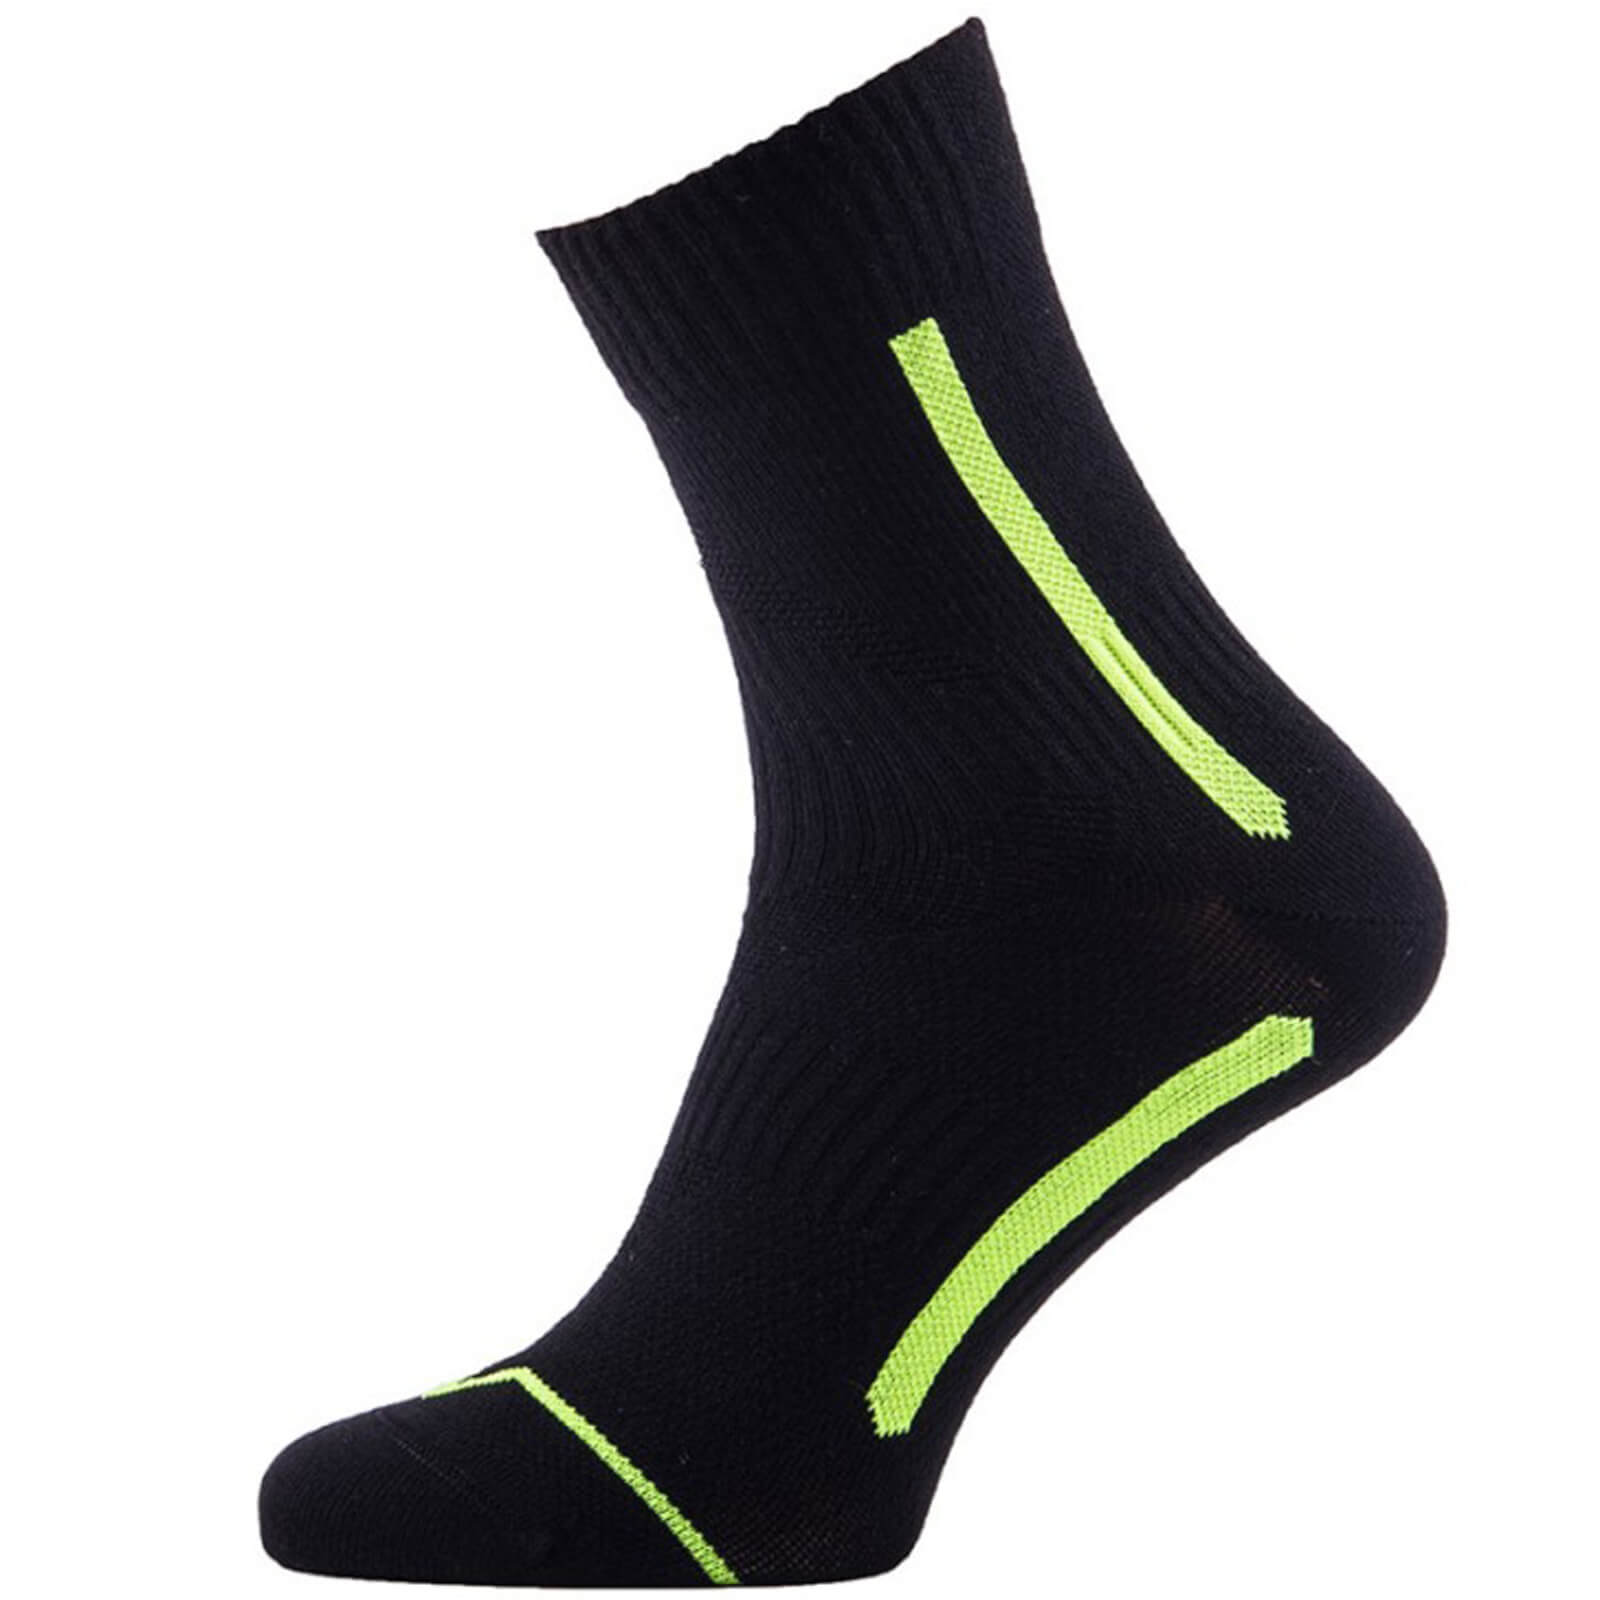 Sealskinz Road Max Ankle Socks - Black/Yellow